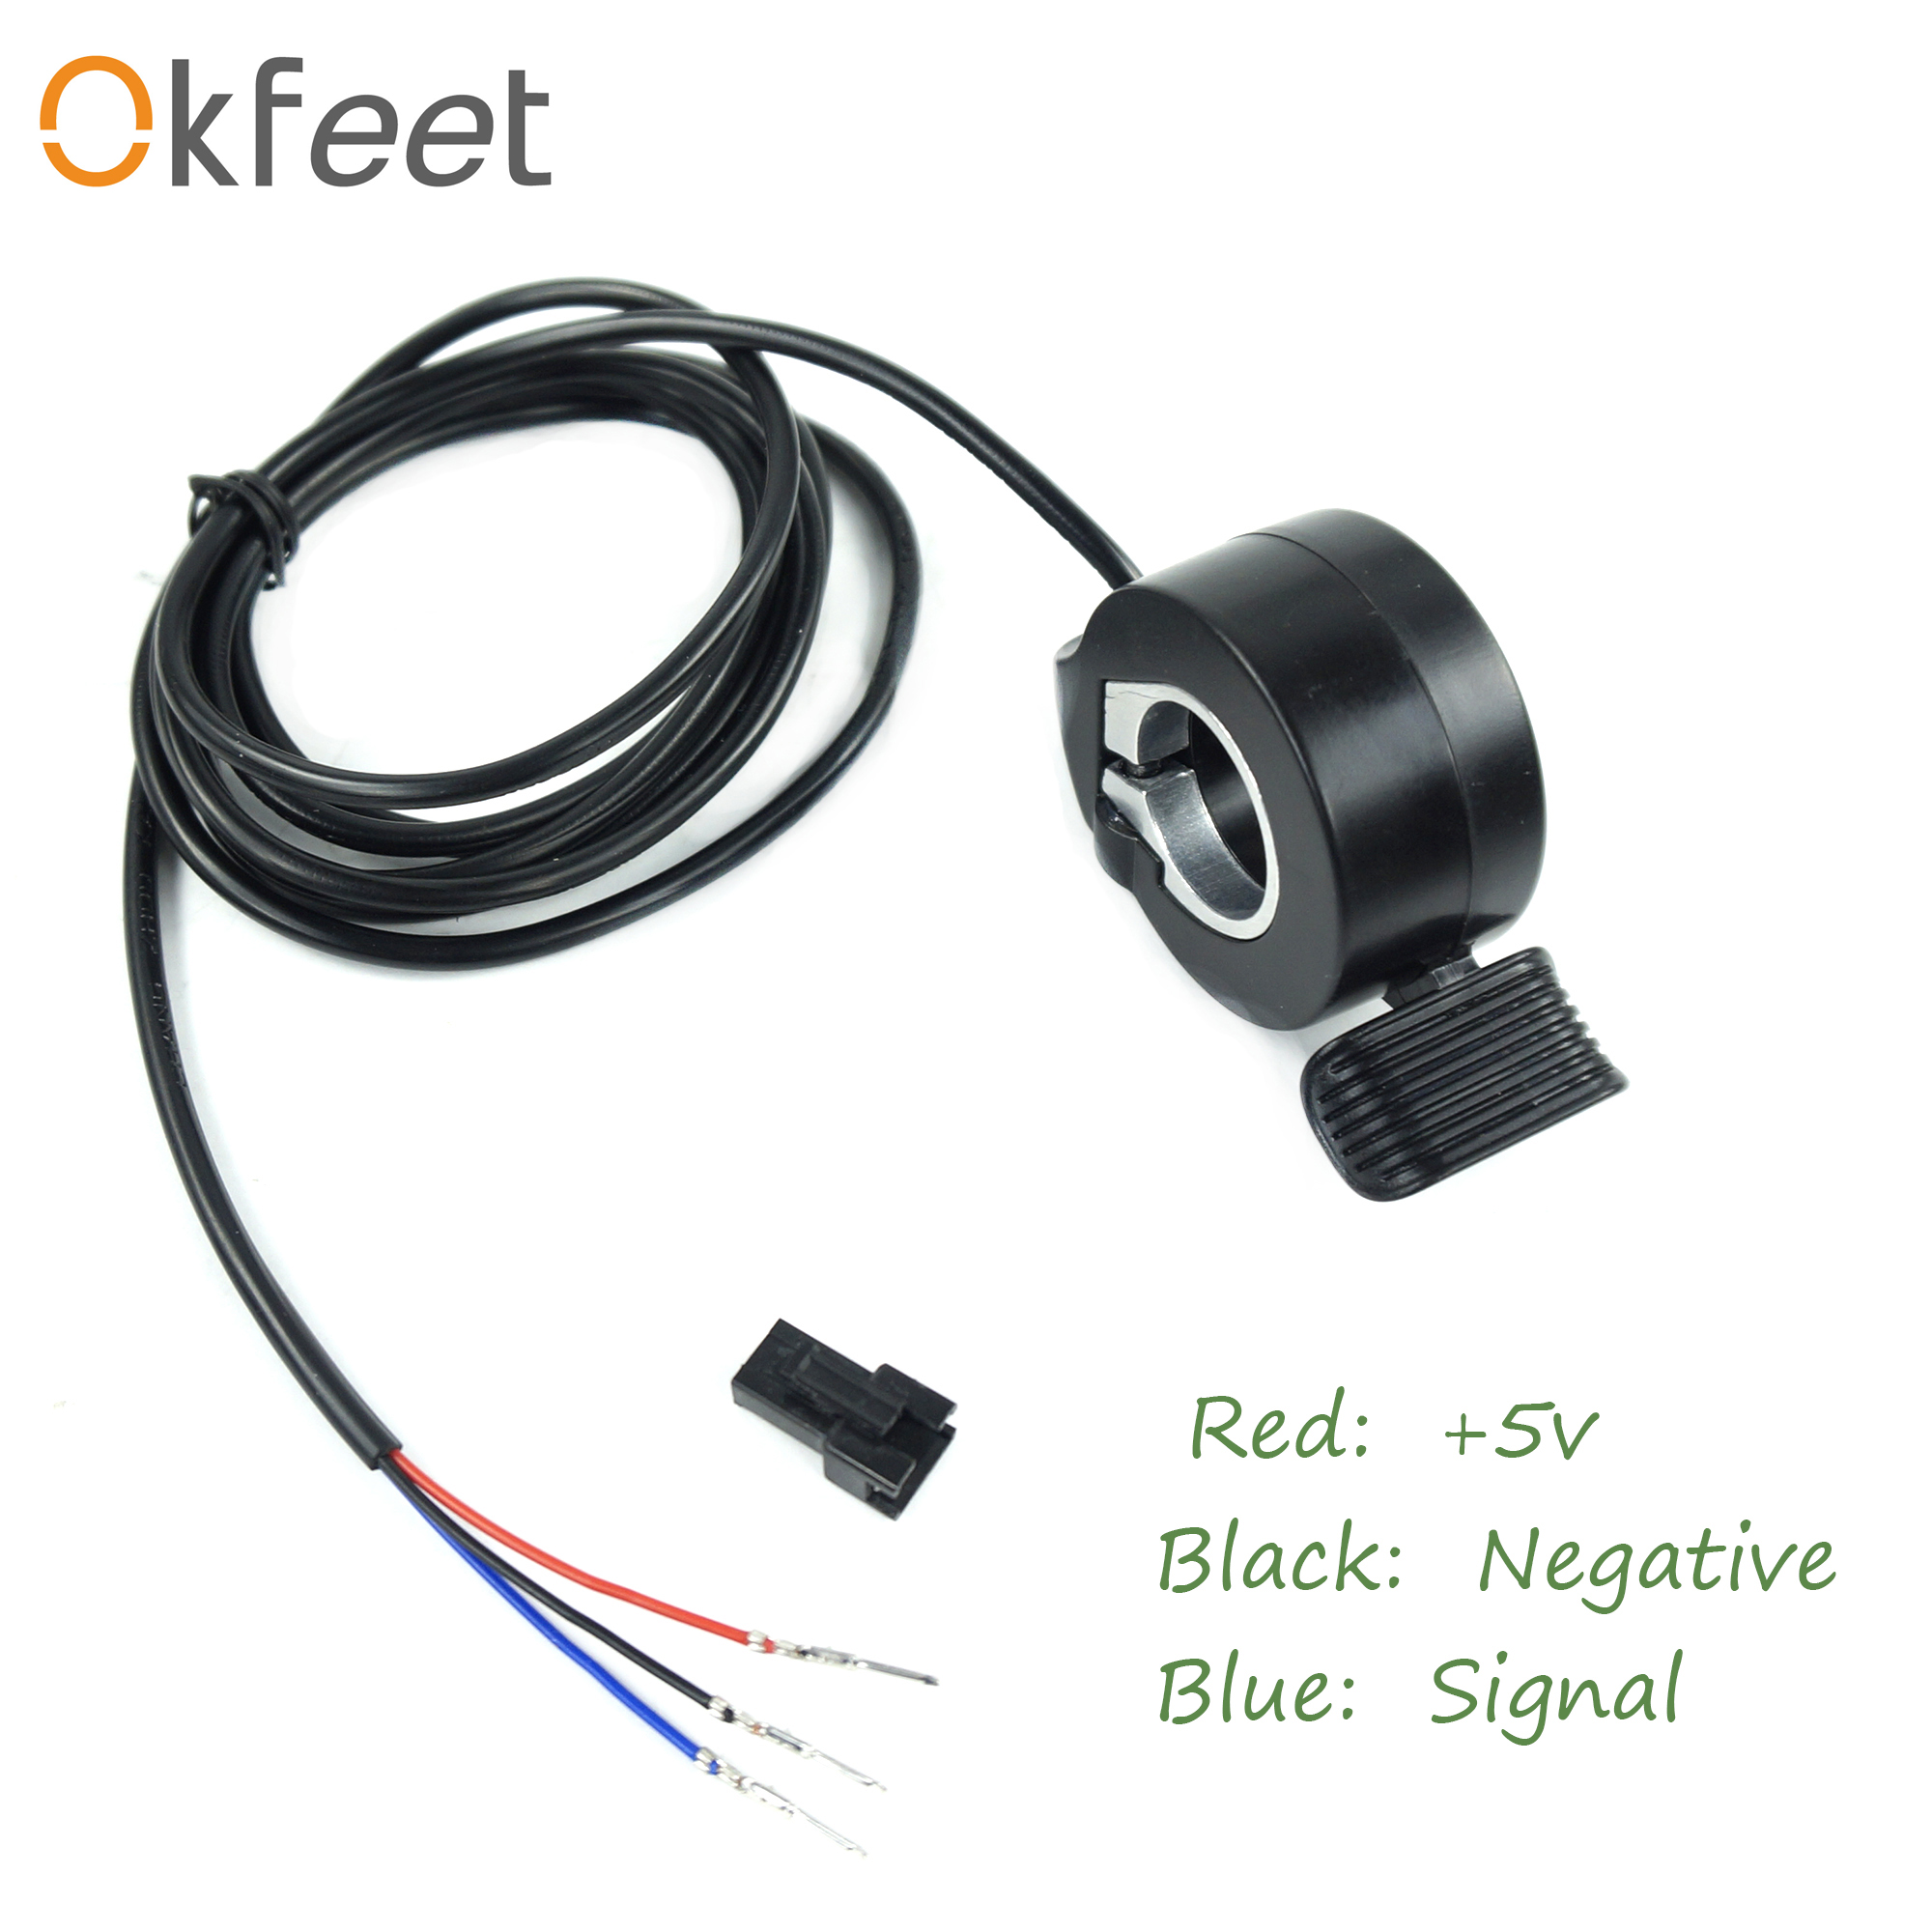 Okfeet Ebike 24V 36V 48V 72V Thumb Throttle, Ebike Accelerator,  Electric Scooter Throttle Speed Throttle For E Bike Parts